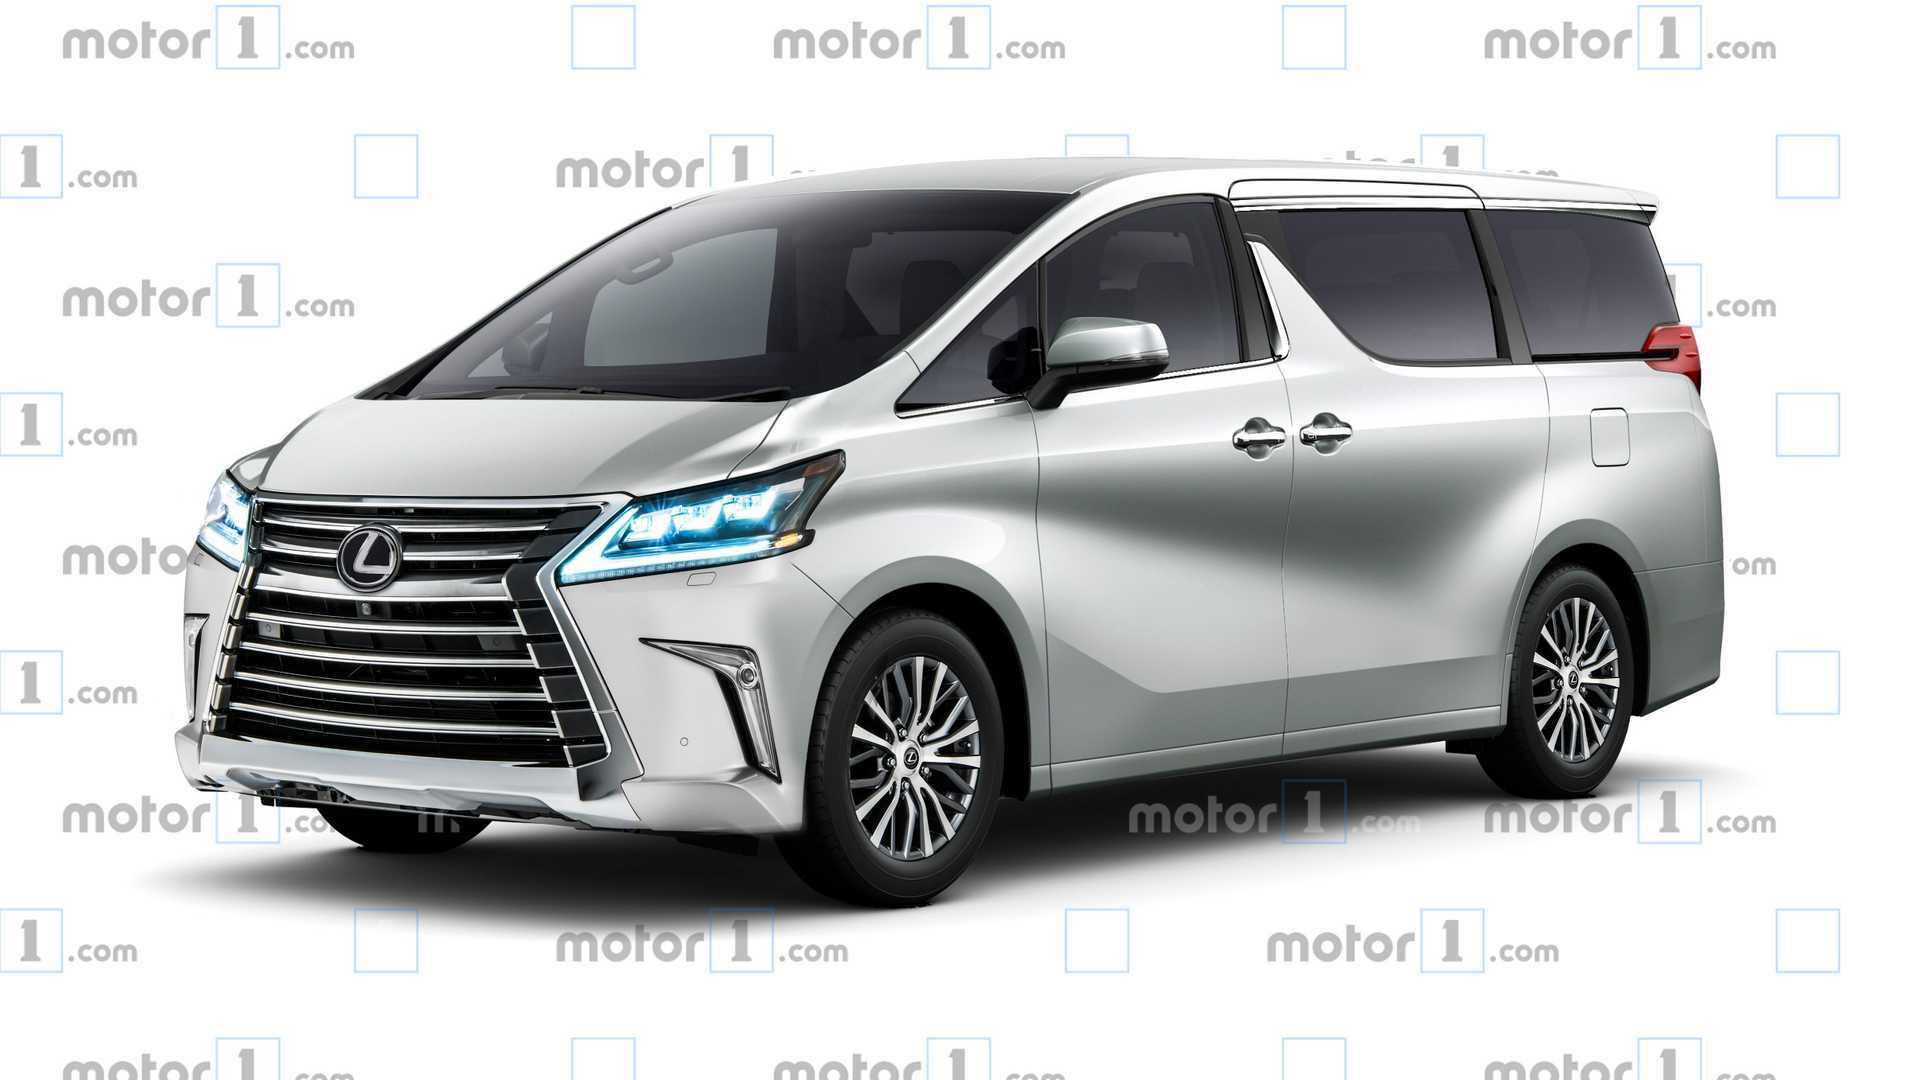 67 Concept of Toyota 2020 Van Research New for Toyota 2020 Van